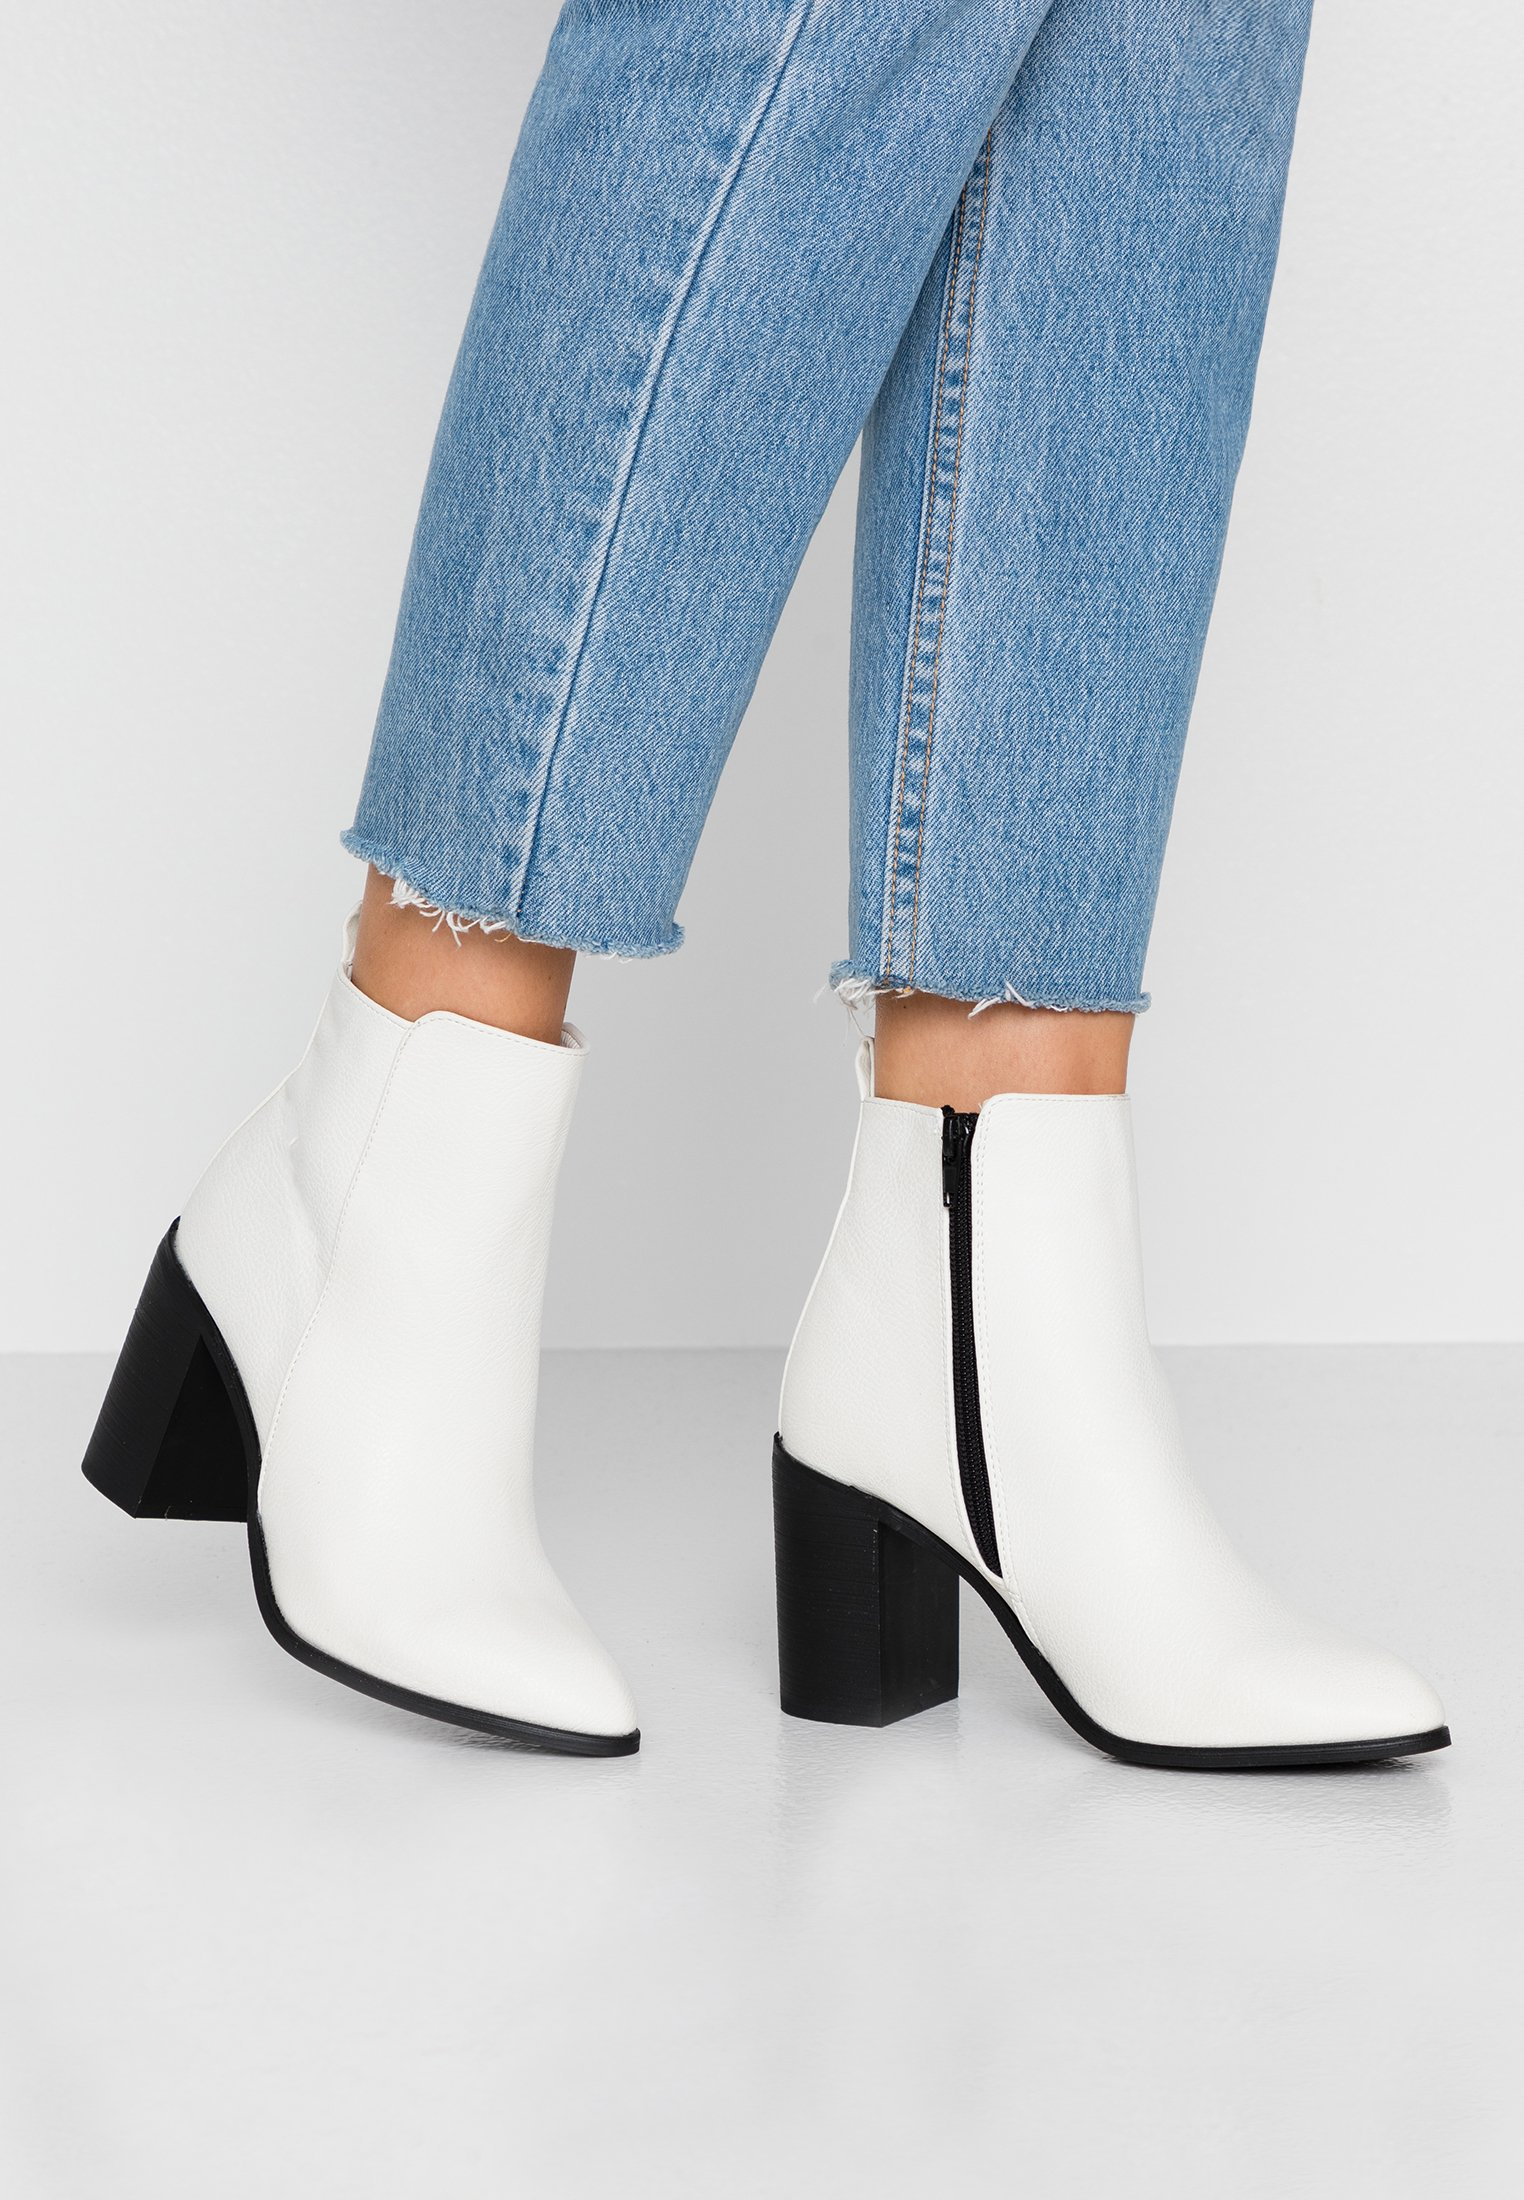 Rubi Shoes by Cotton On RINNA- Bottines à talons hauts white